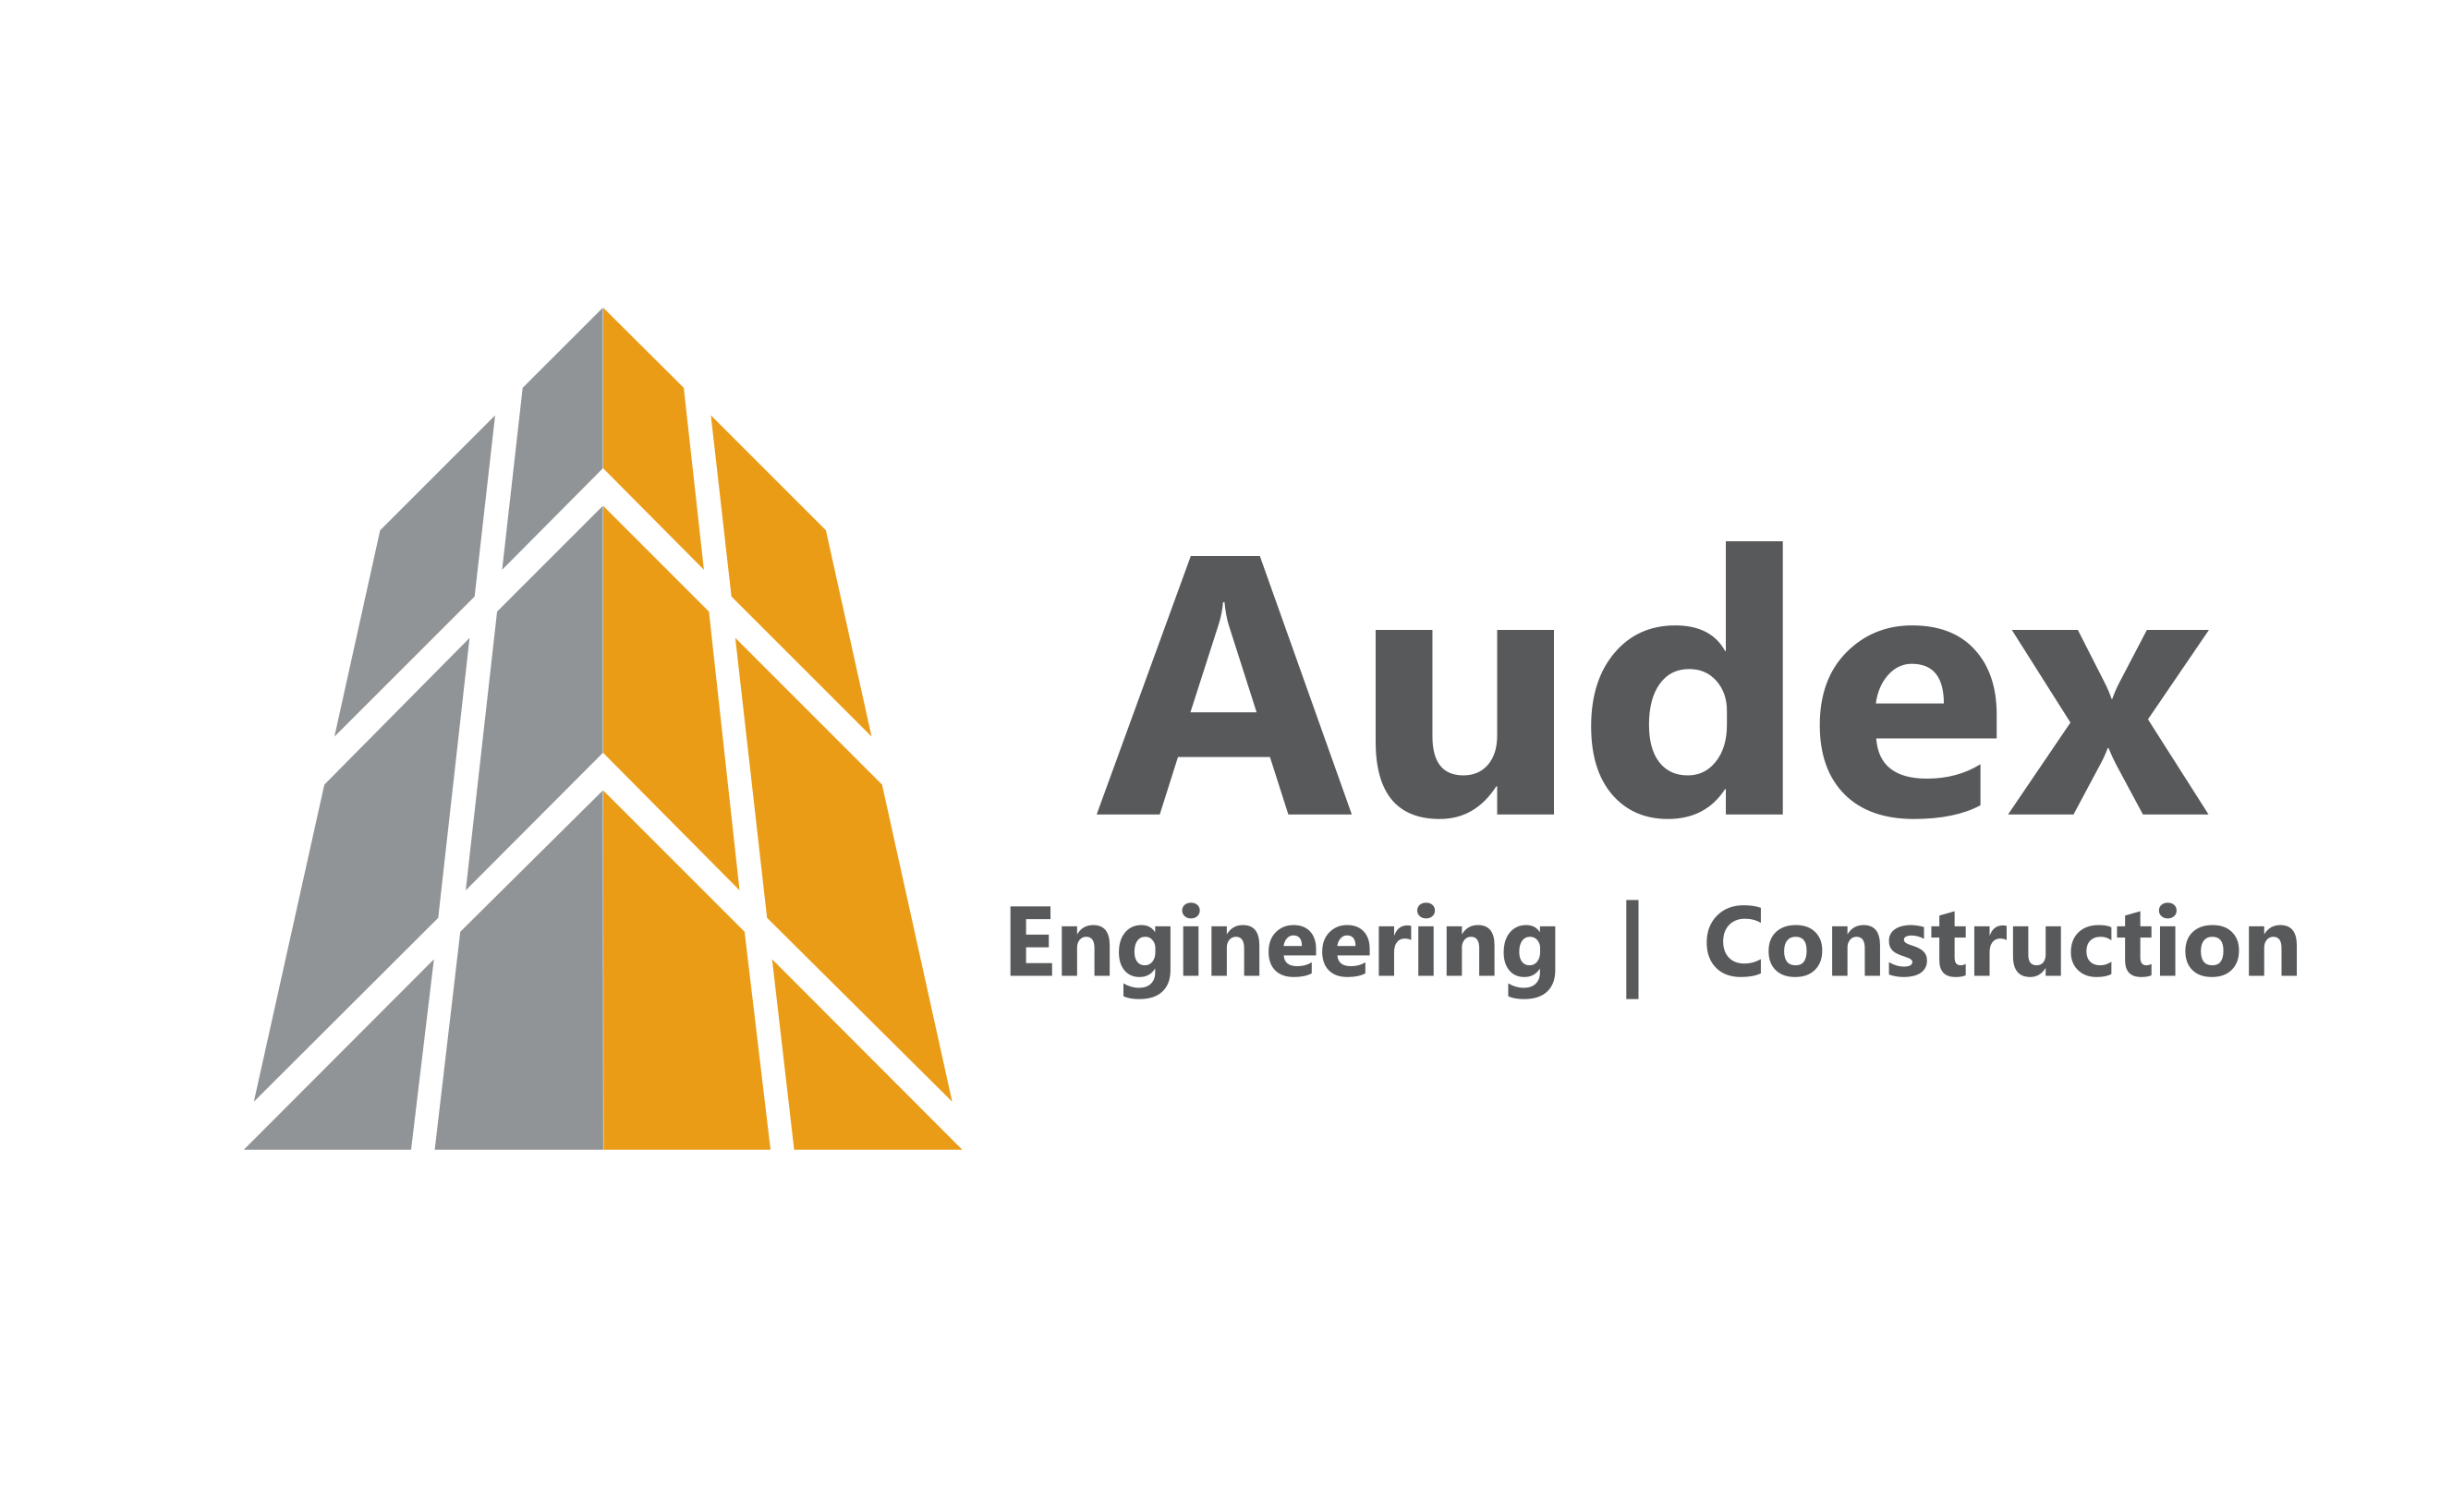 Audex Construction and Engineering Limited Logo